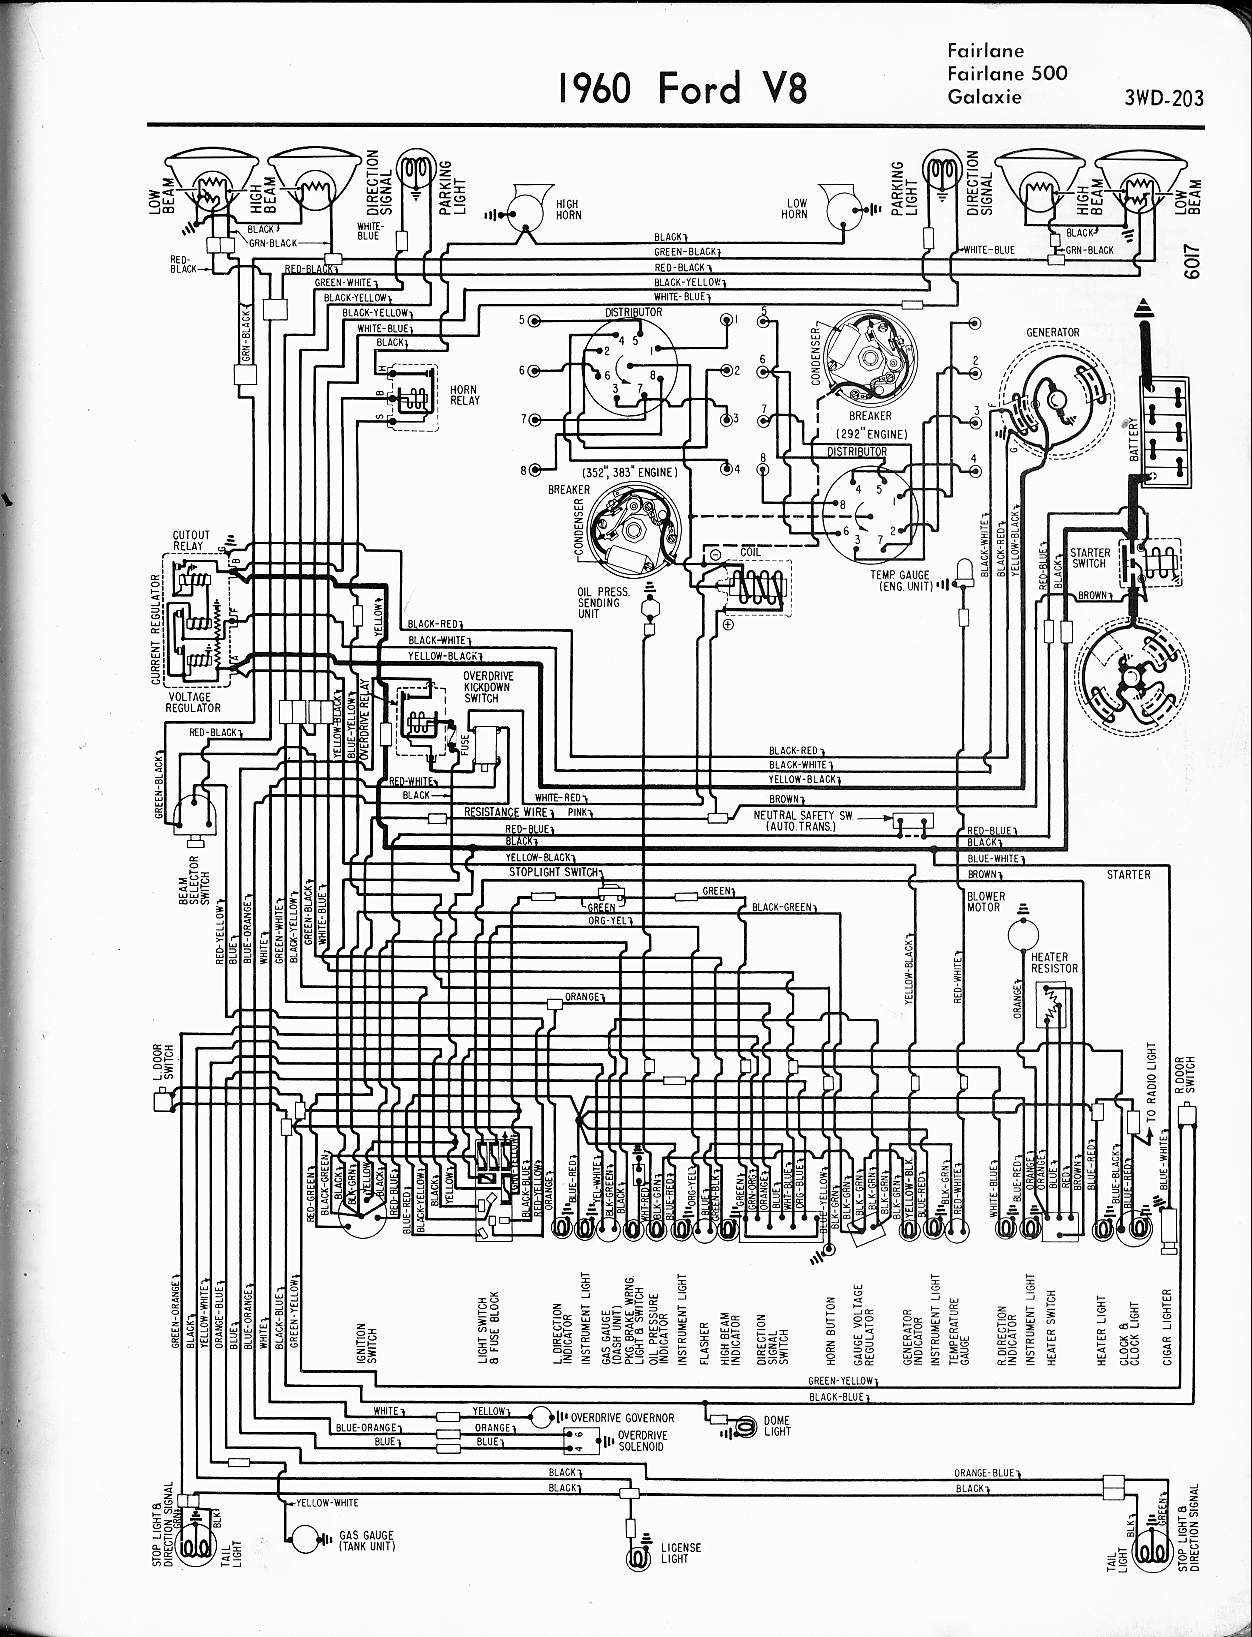 hight resolution of 1965 ford galaxie 500 wiring diagram wiring diagram expert 1965 ford f100 wiring diagram 1965 ford